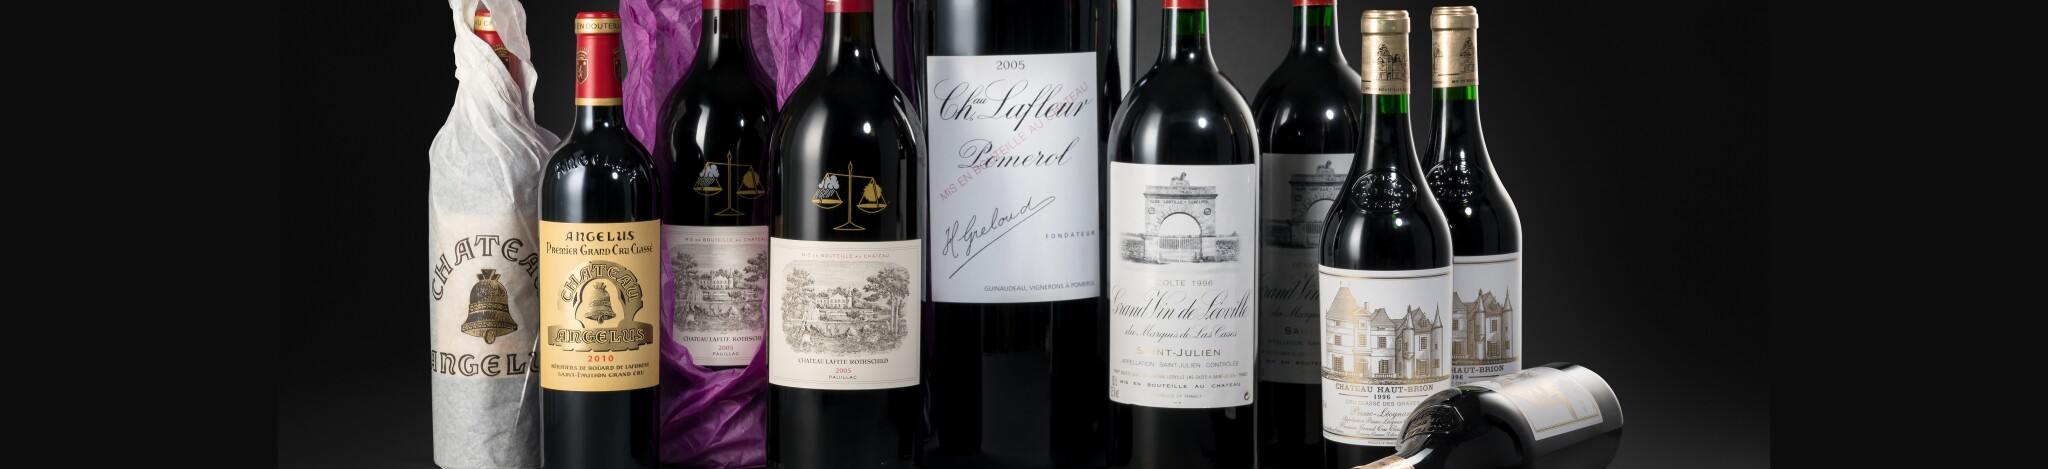 Vine | Fine Wines from France and Beyond featuring A Great Cellar